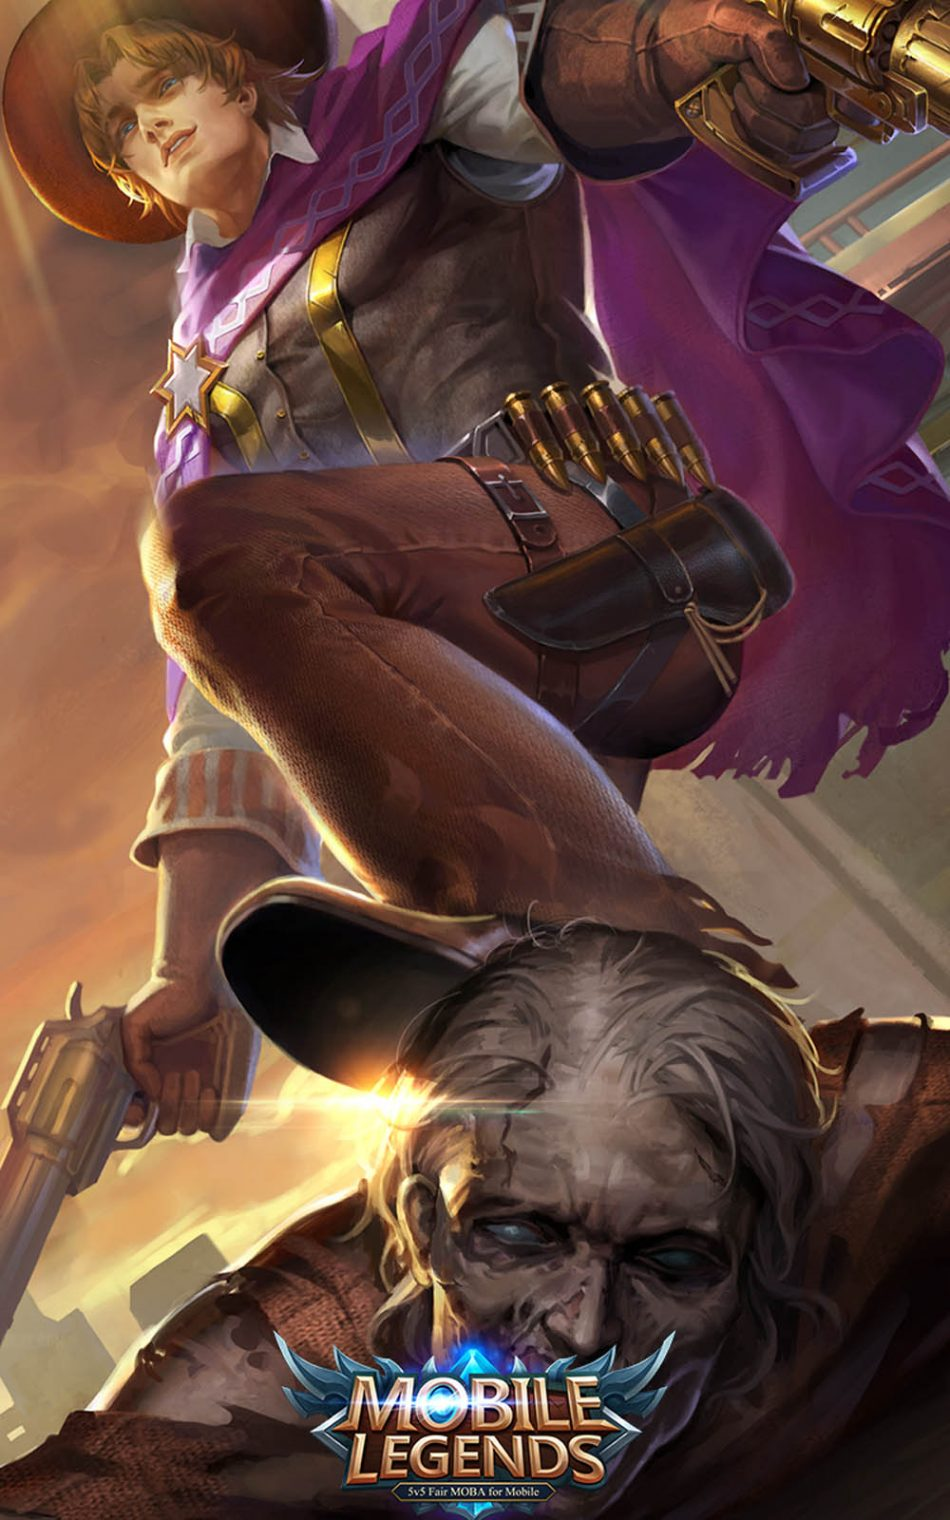 Download Clint Mobile Legends Hero Free Pure 4K Ultra HD Mobile Wallpaper